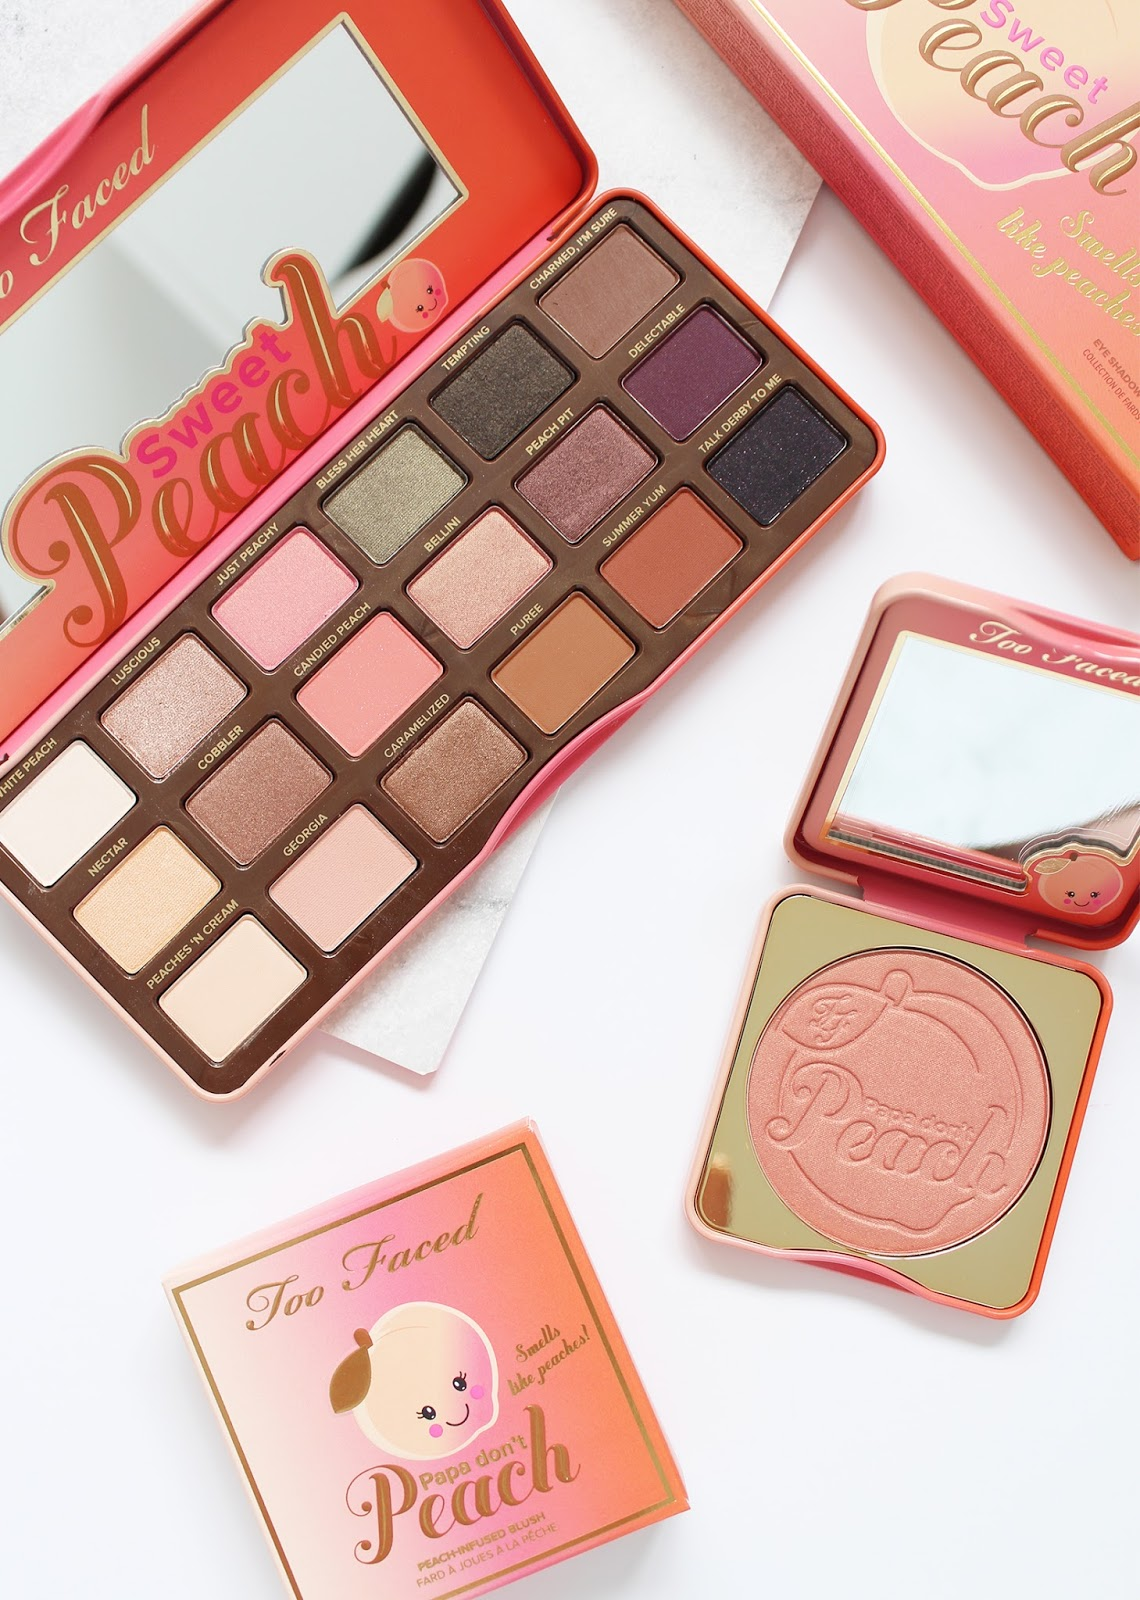 TOO FACED | Sweet Peach Eyeshadow Collection + Papa Don't Peach Peach-Infused Blush - Review + Swatches - CassandraMyee